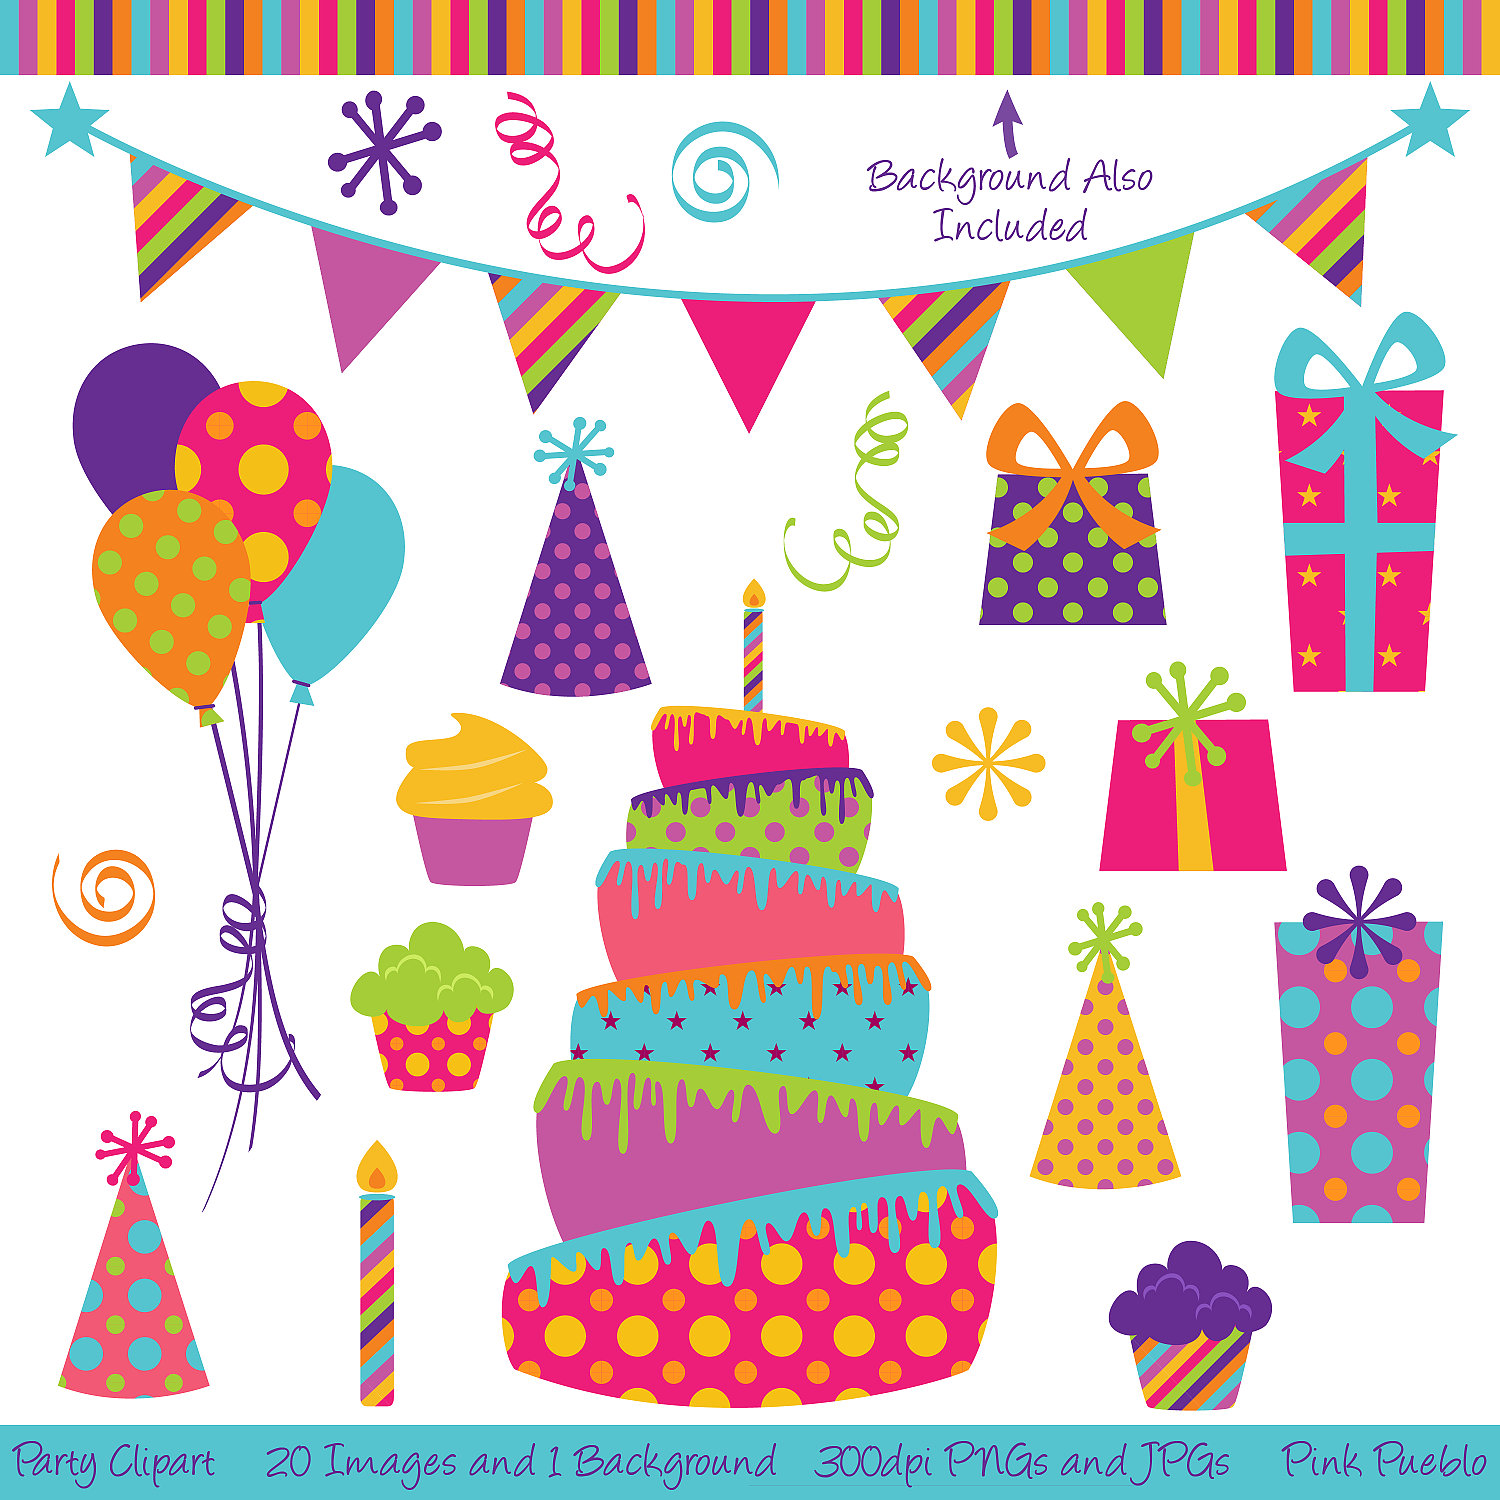 Vintage birthday party clipart .